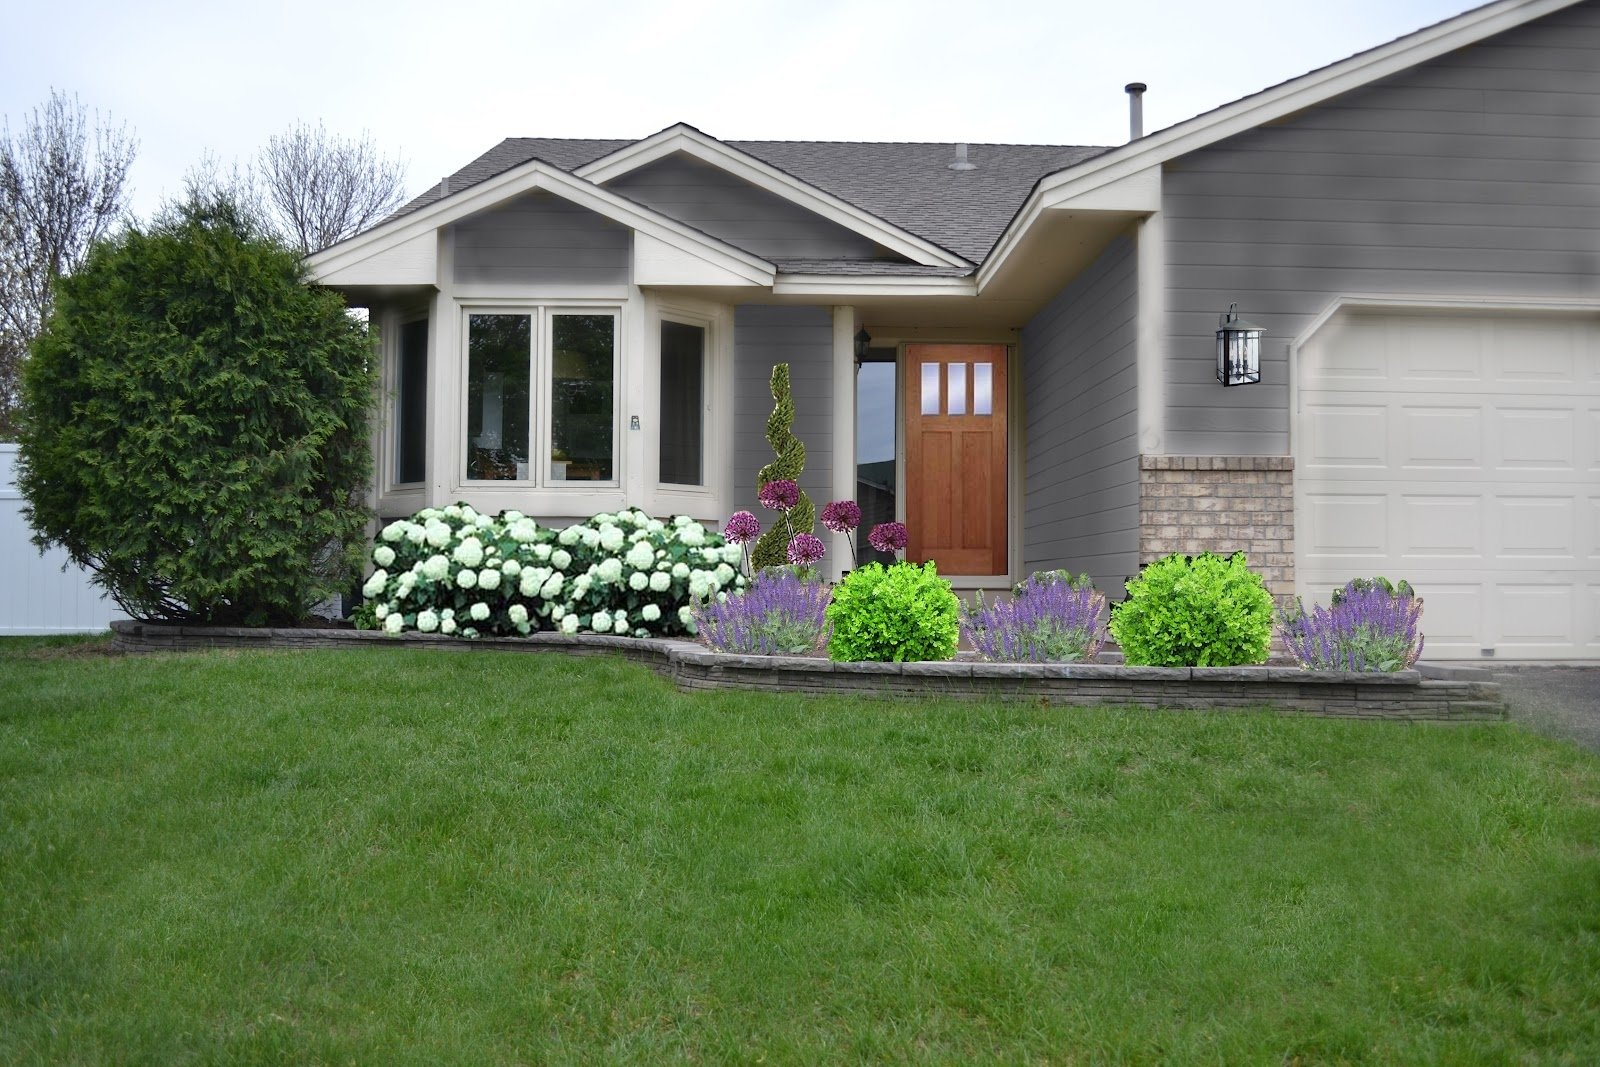 10 Great Landscaping Ideas For Front Of House front yard front yard simple landscaping ideas for of house design 2020